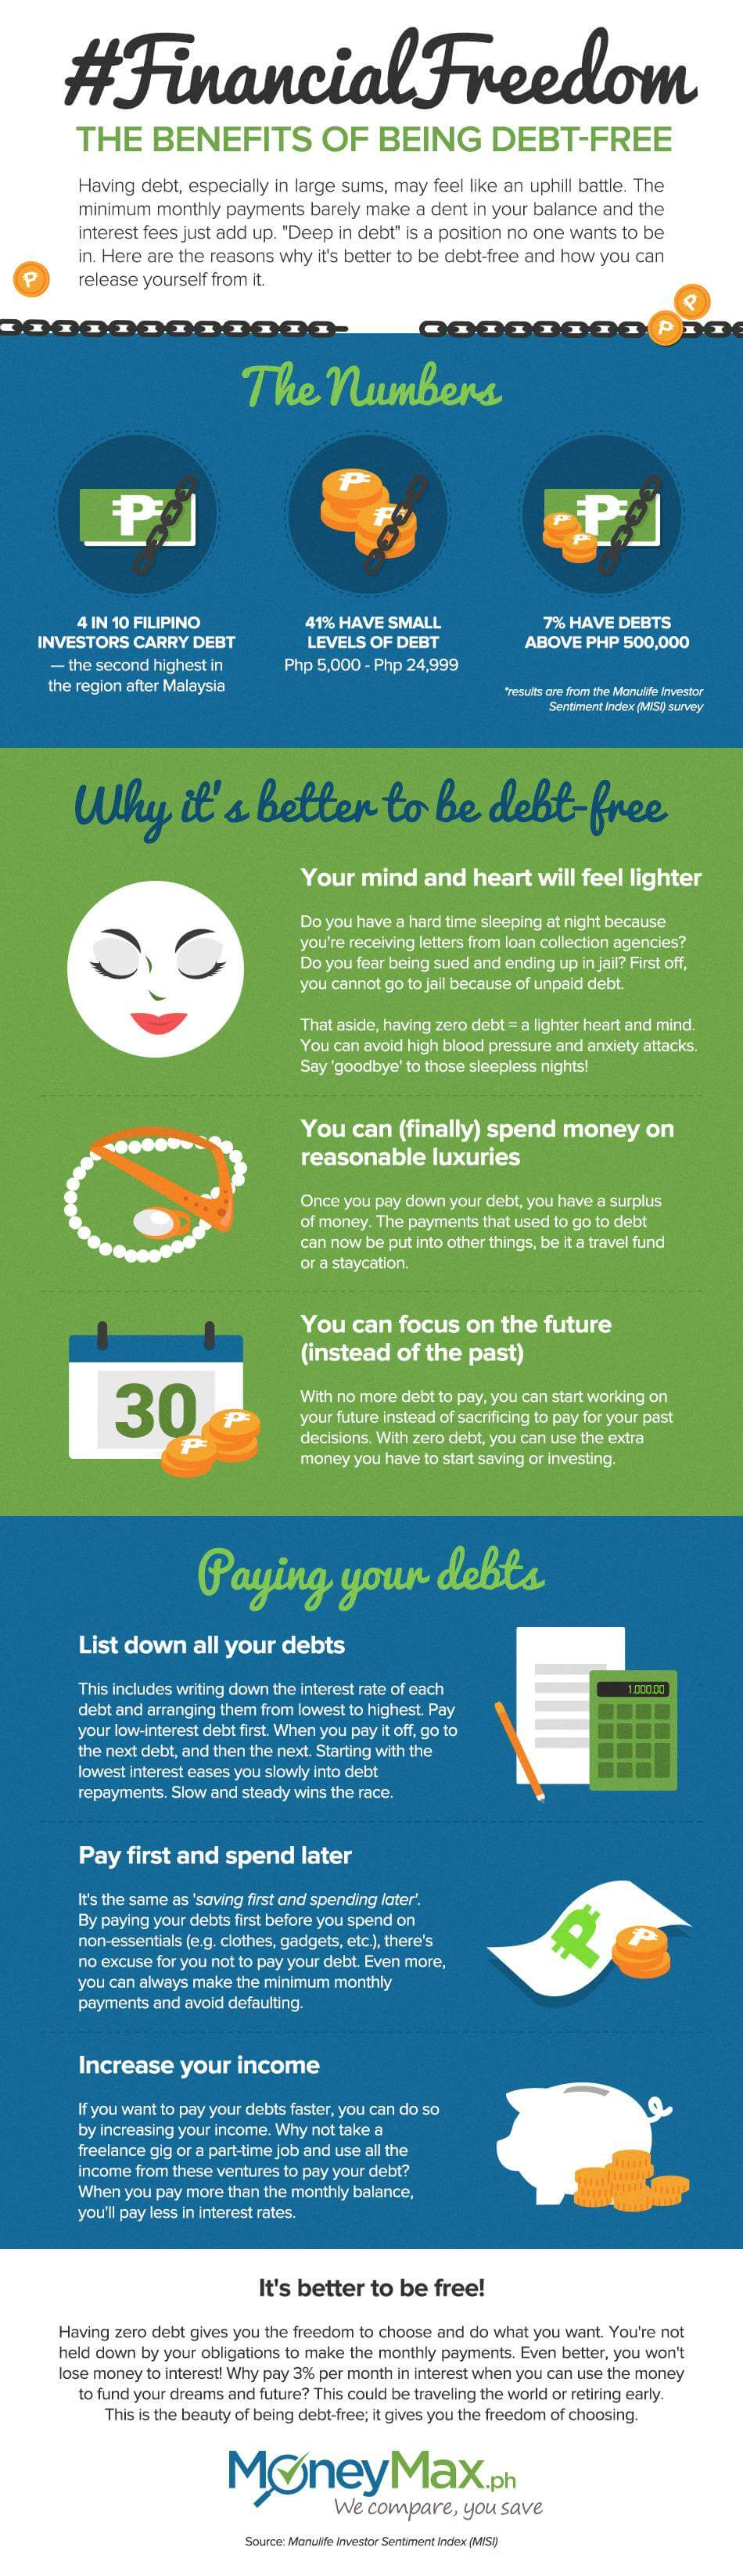 [INFOGRAPHIC] #FinancialFreedom: The Benefits of Being Debt-Free